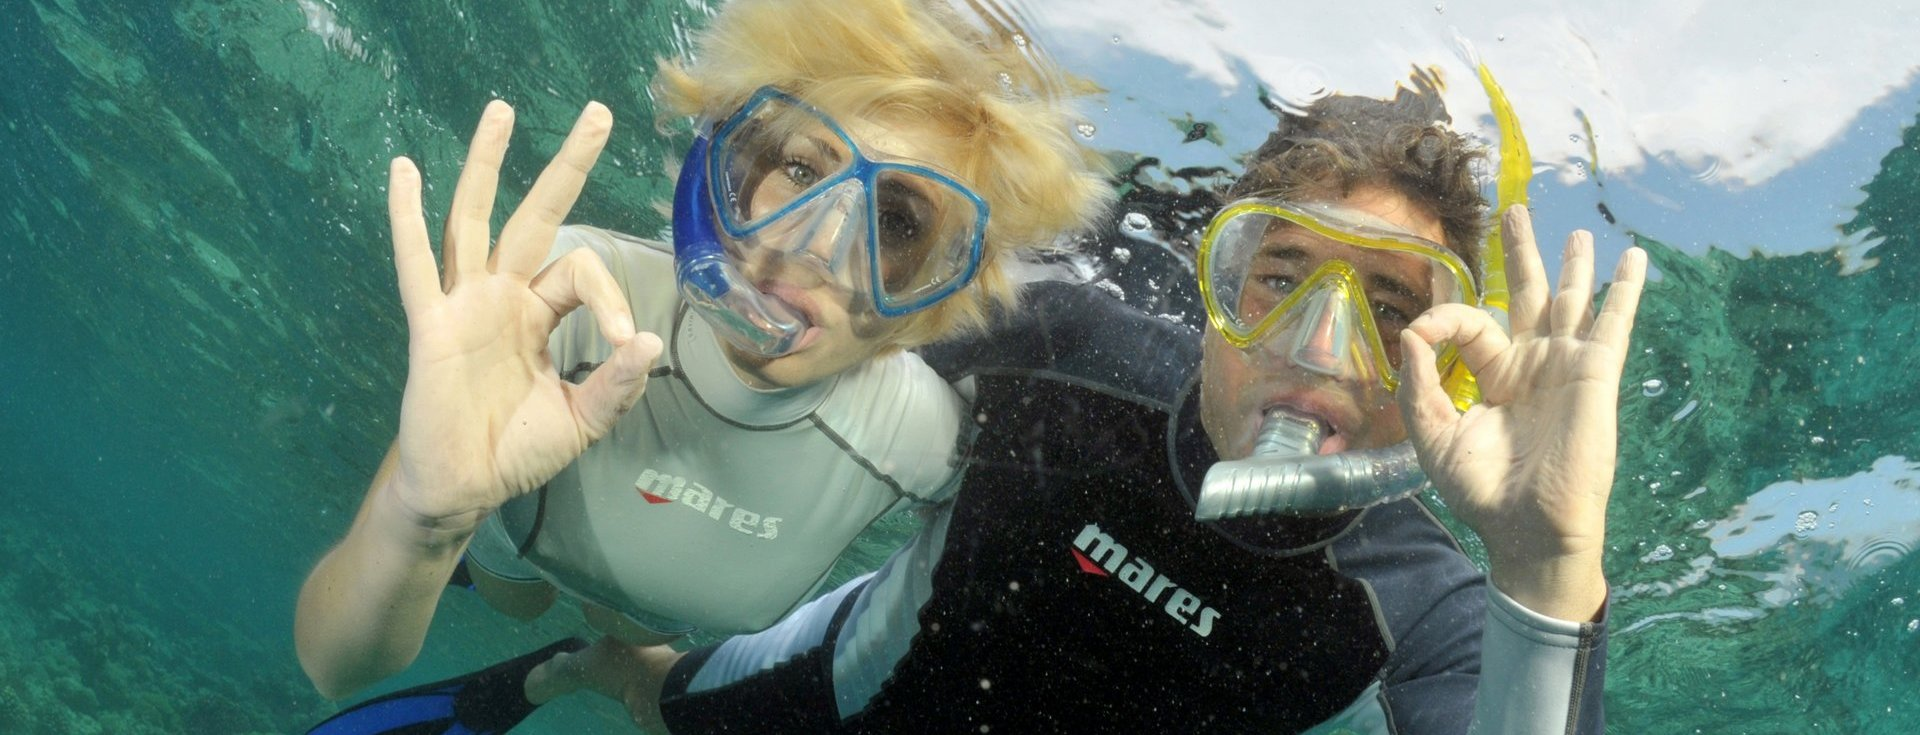 Snorkeling, Discover Scuba Diving & Dive Courses